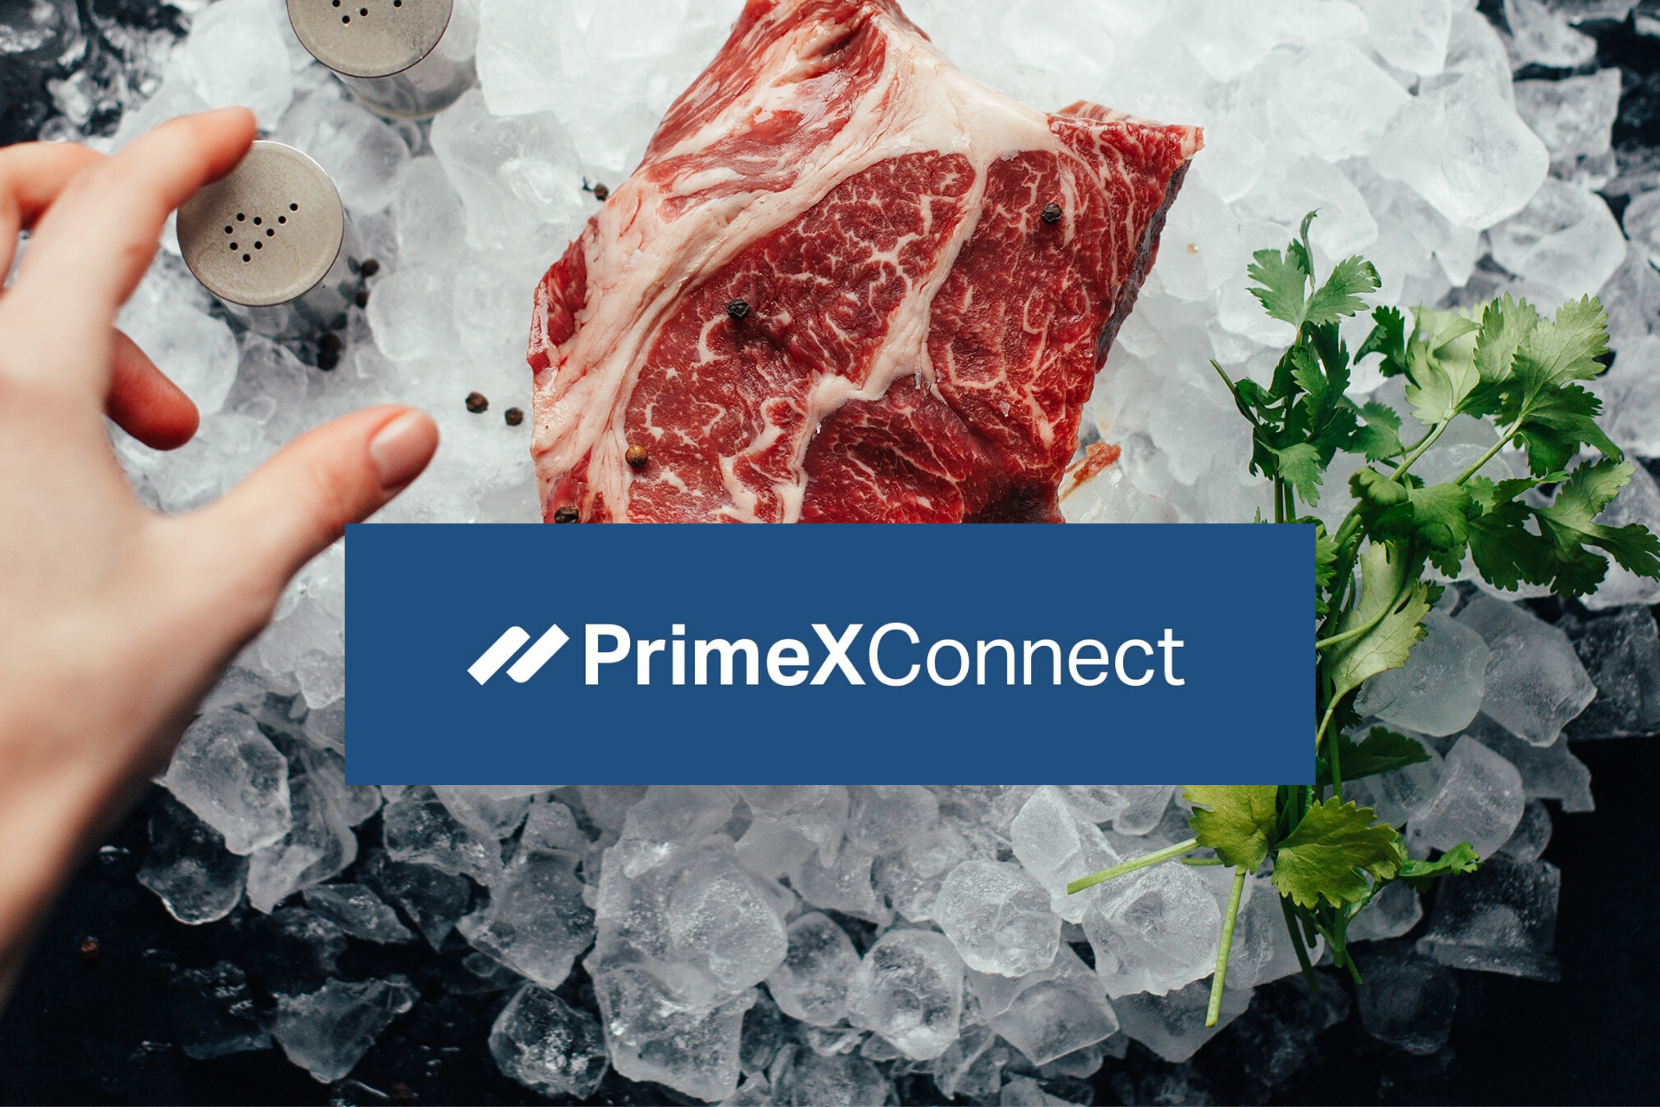 PrimeX Connect Background